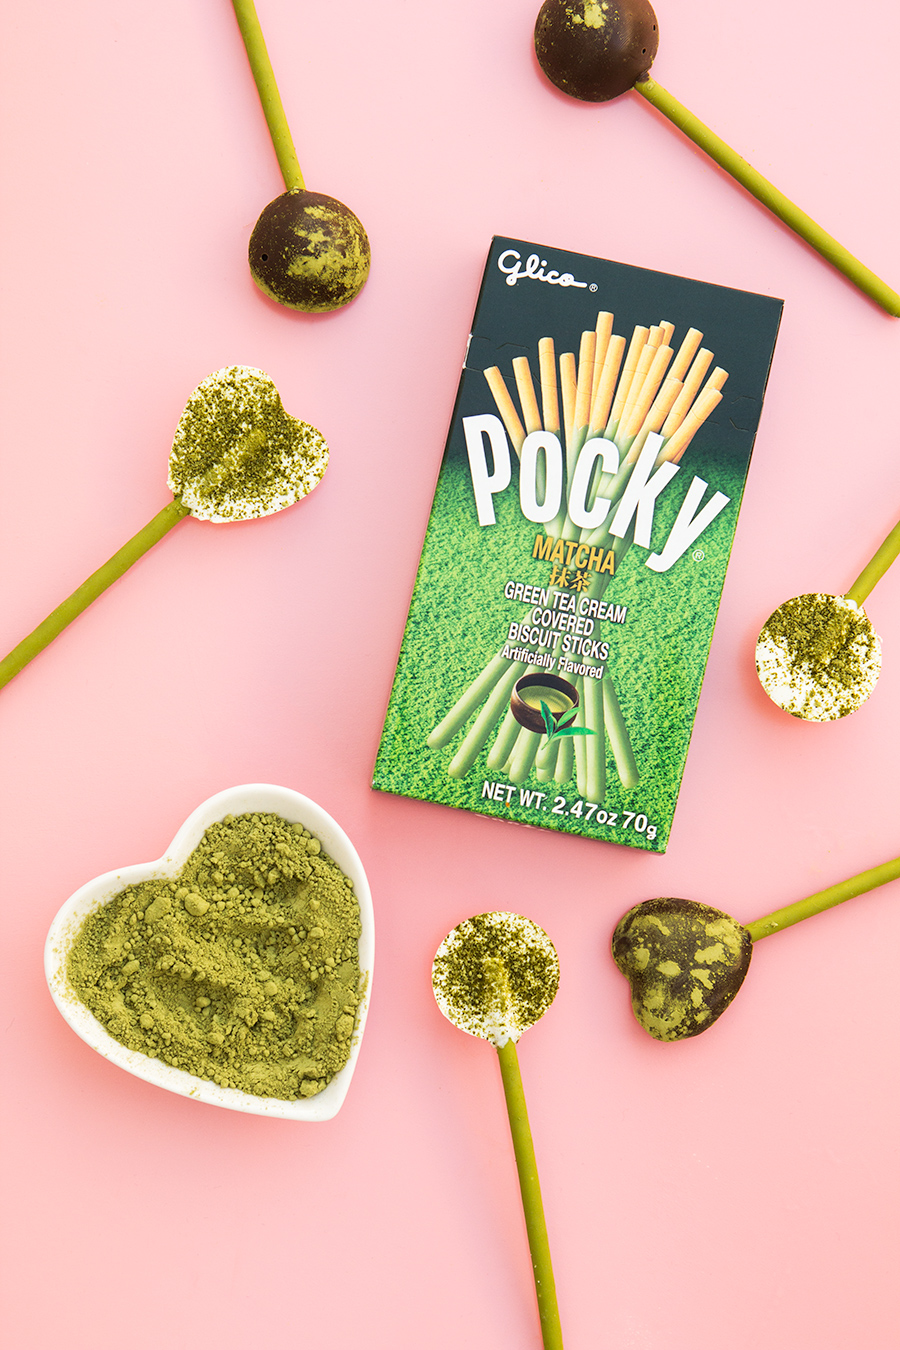 Matcha lovers, you gotta try this! These Matcha @Pocky pops are the perfect sweet treat to pack in your lunchbox! Click through to watch how to make them.